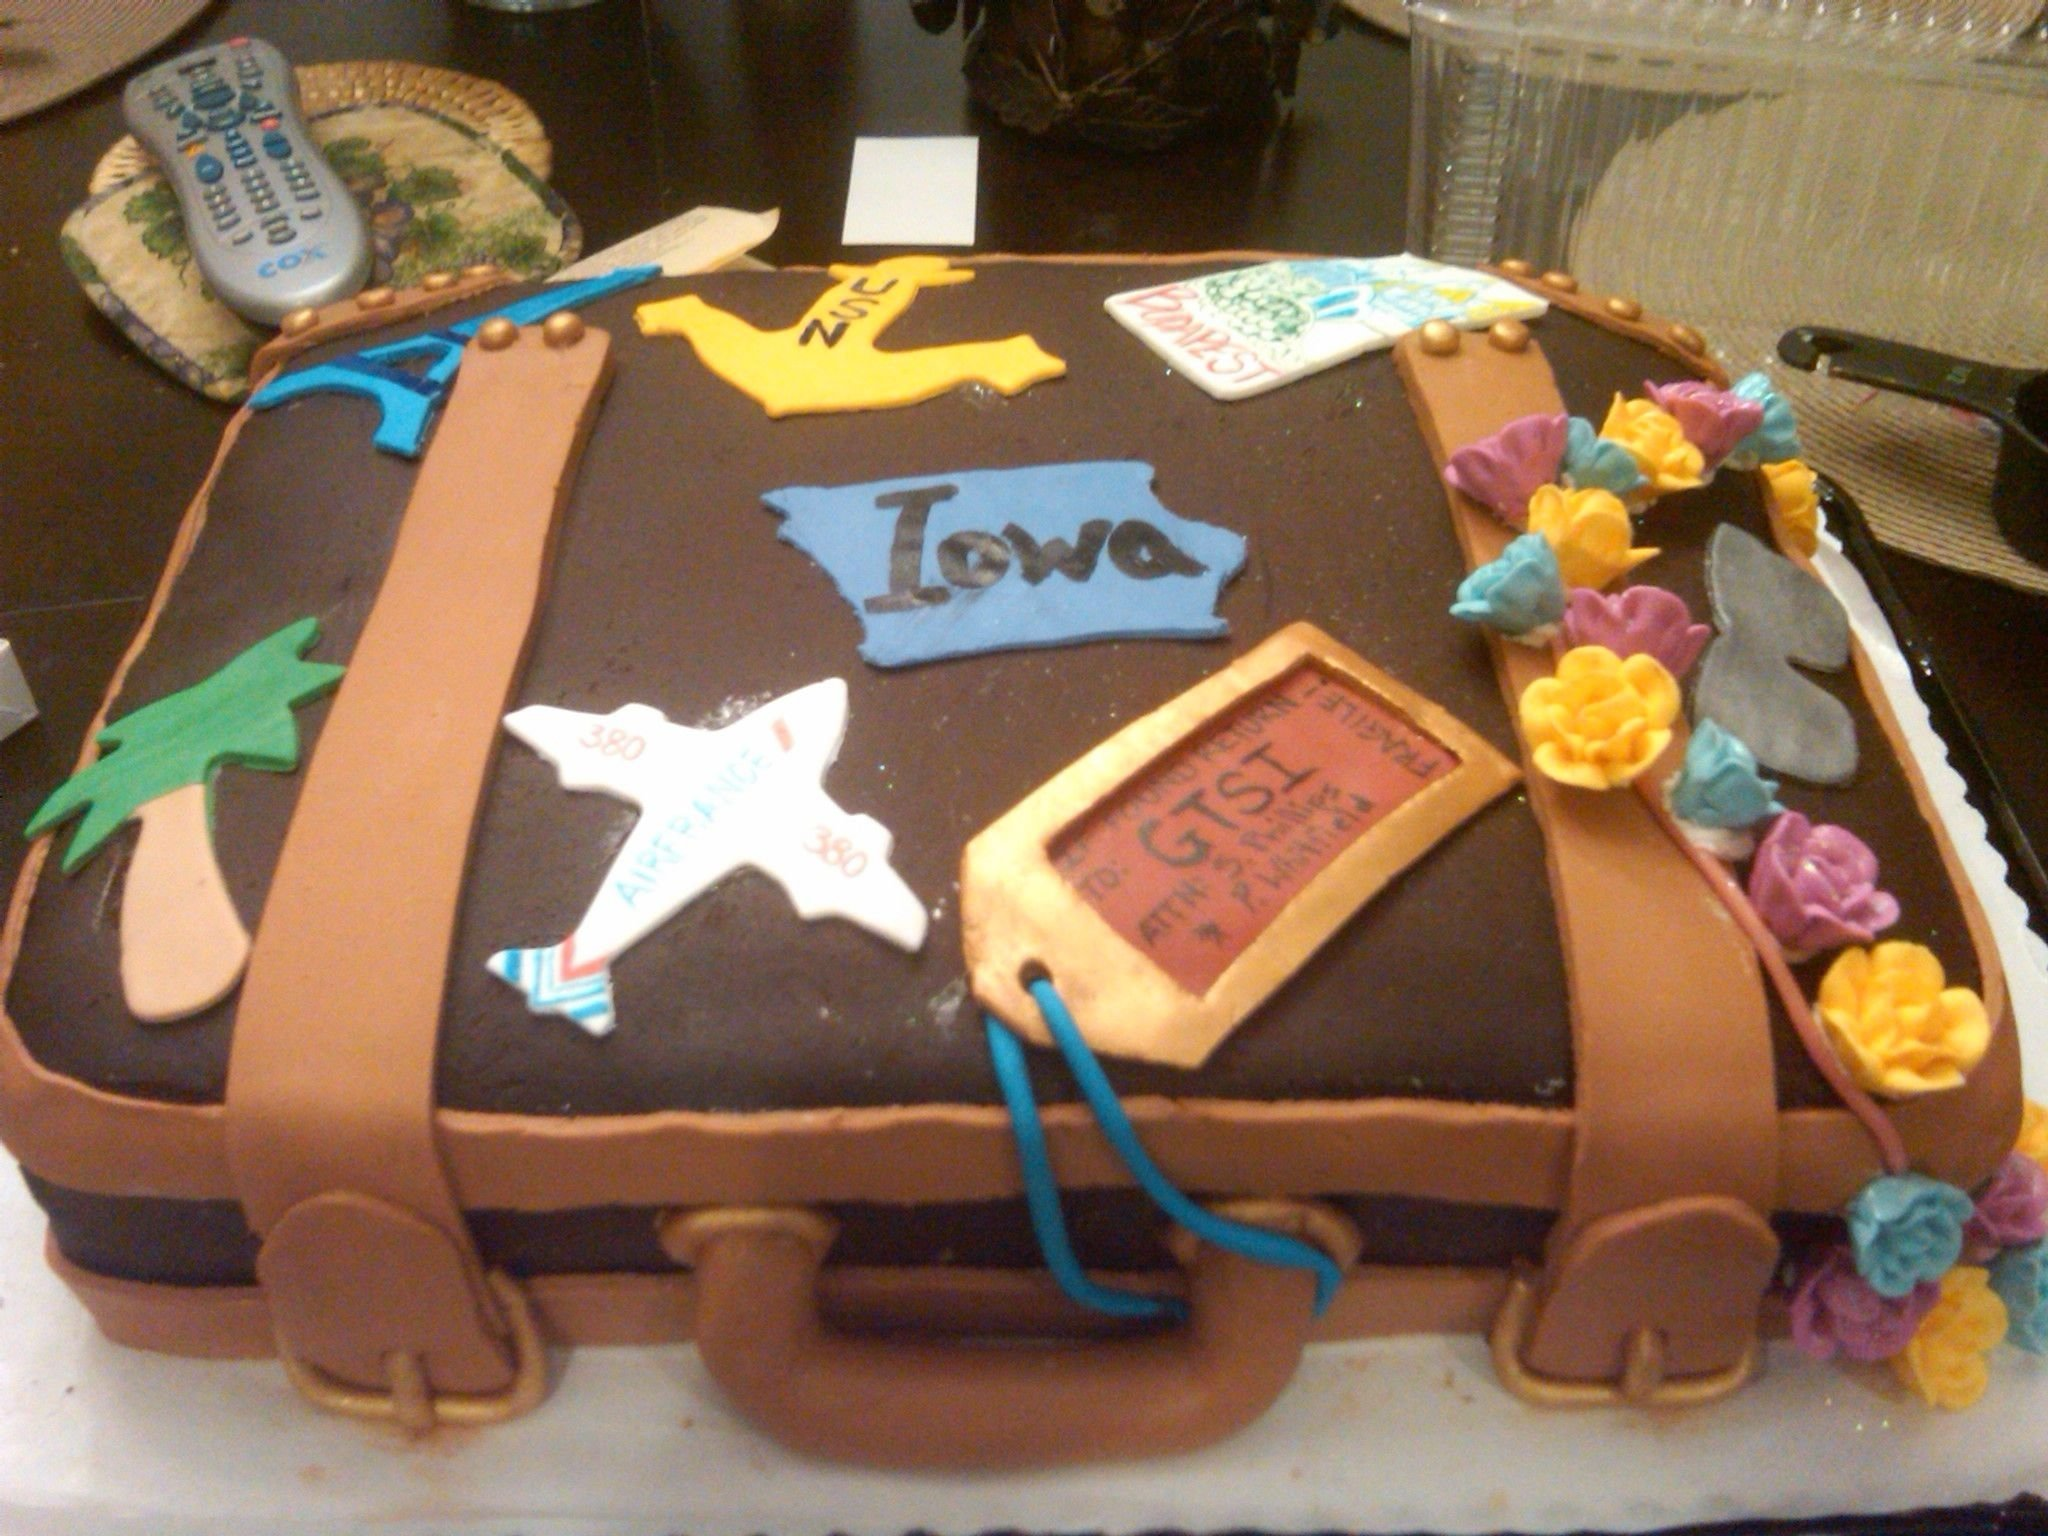 10 Best Going Away Party Ideas Work suitcase cake i made for a going away party at work today all of